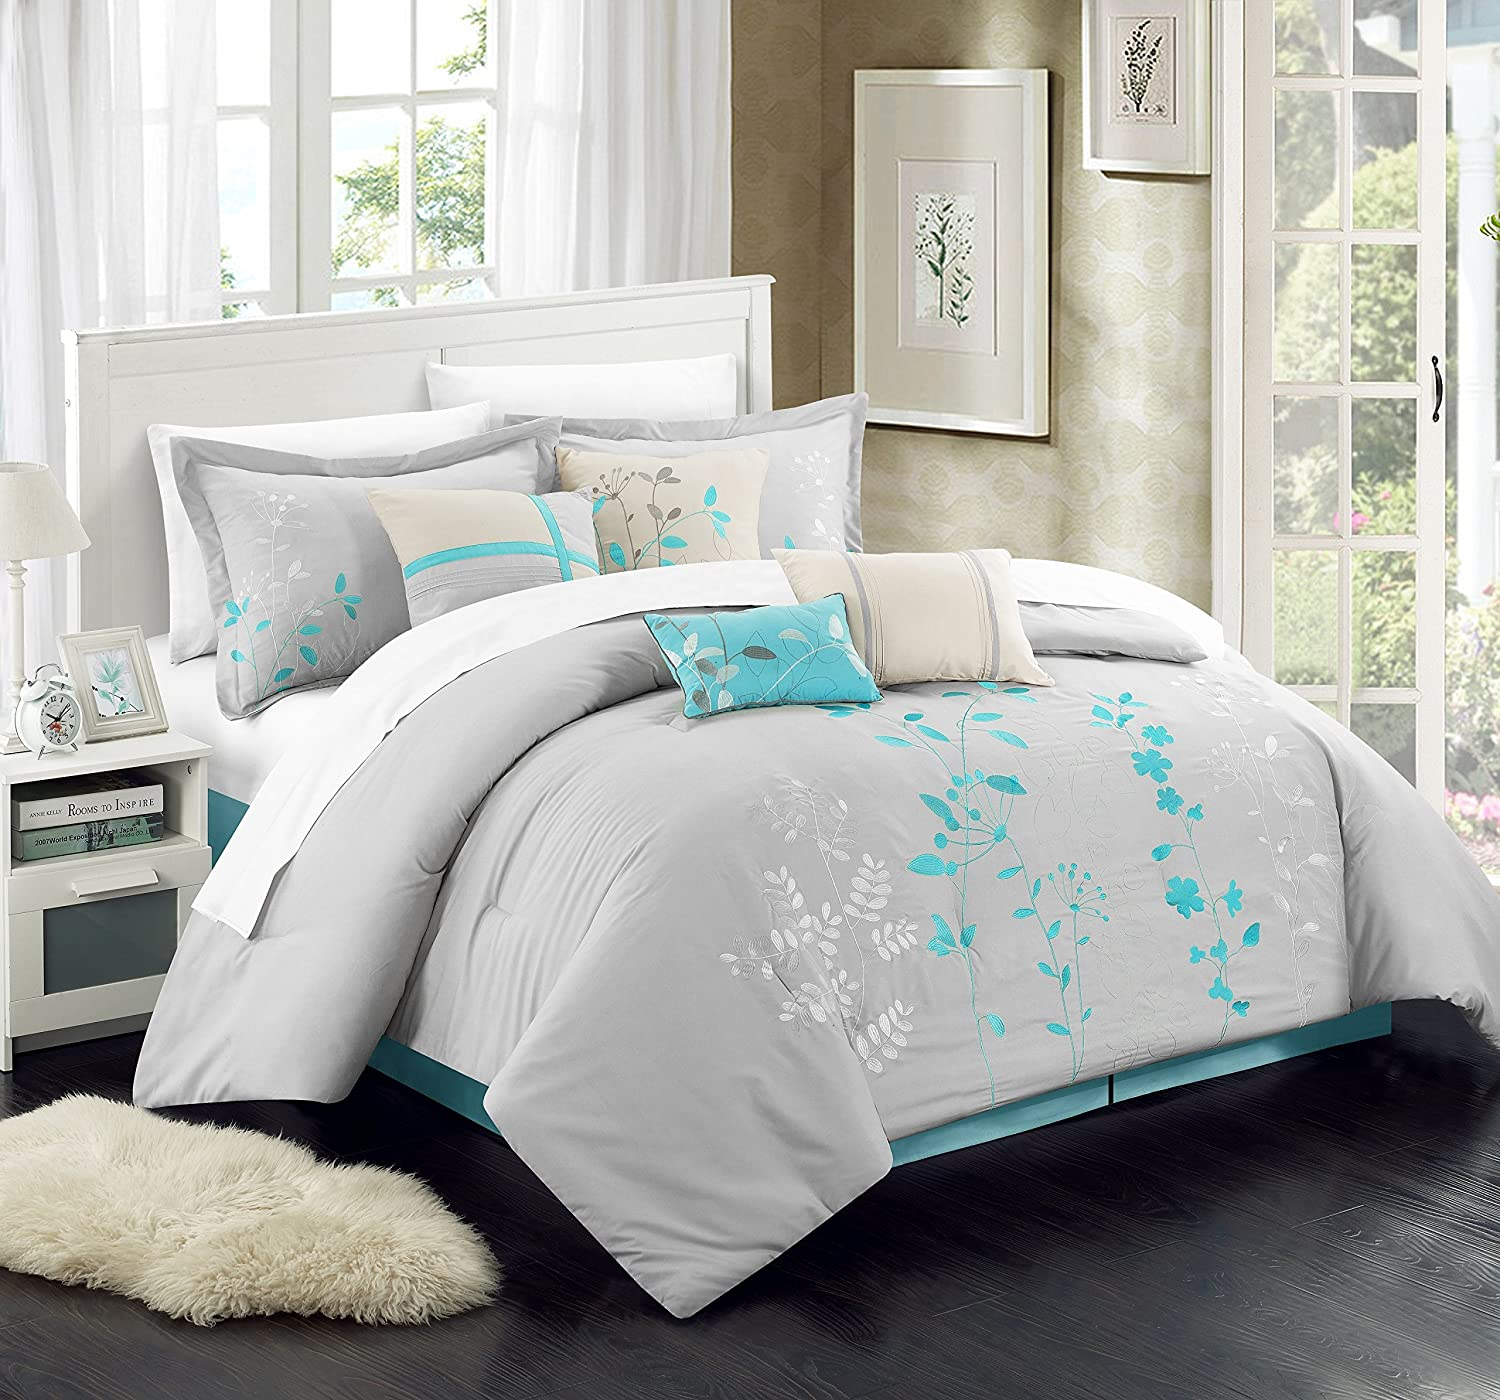 Chic Home 8 Piece Bliss Garden Comforter Set, King, Turquoise